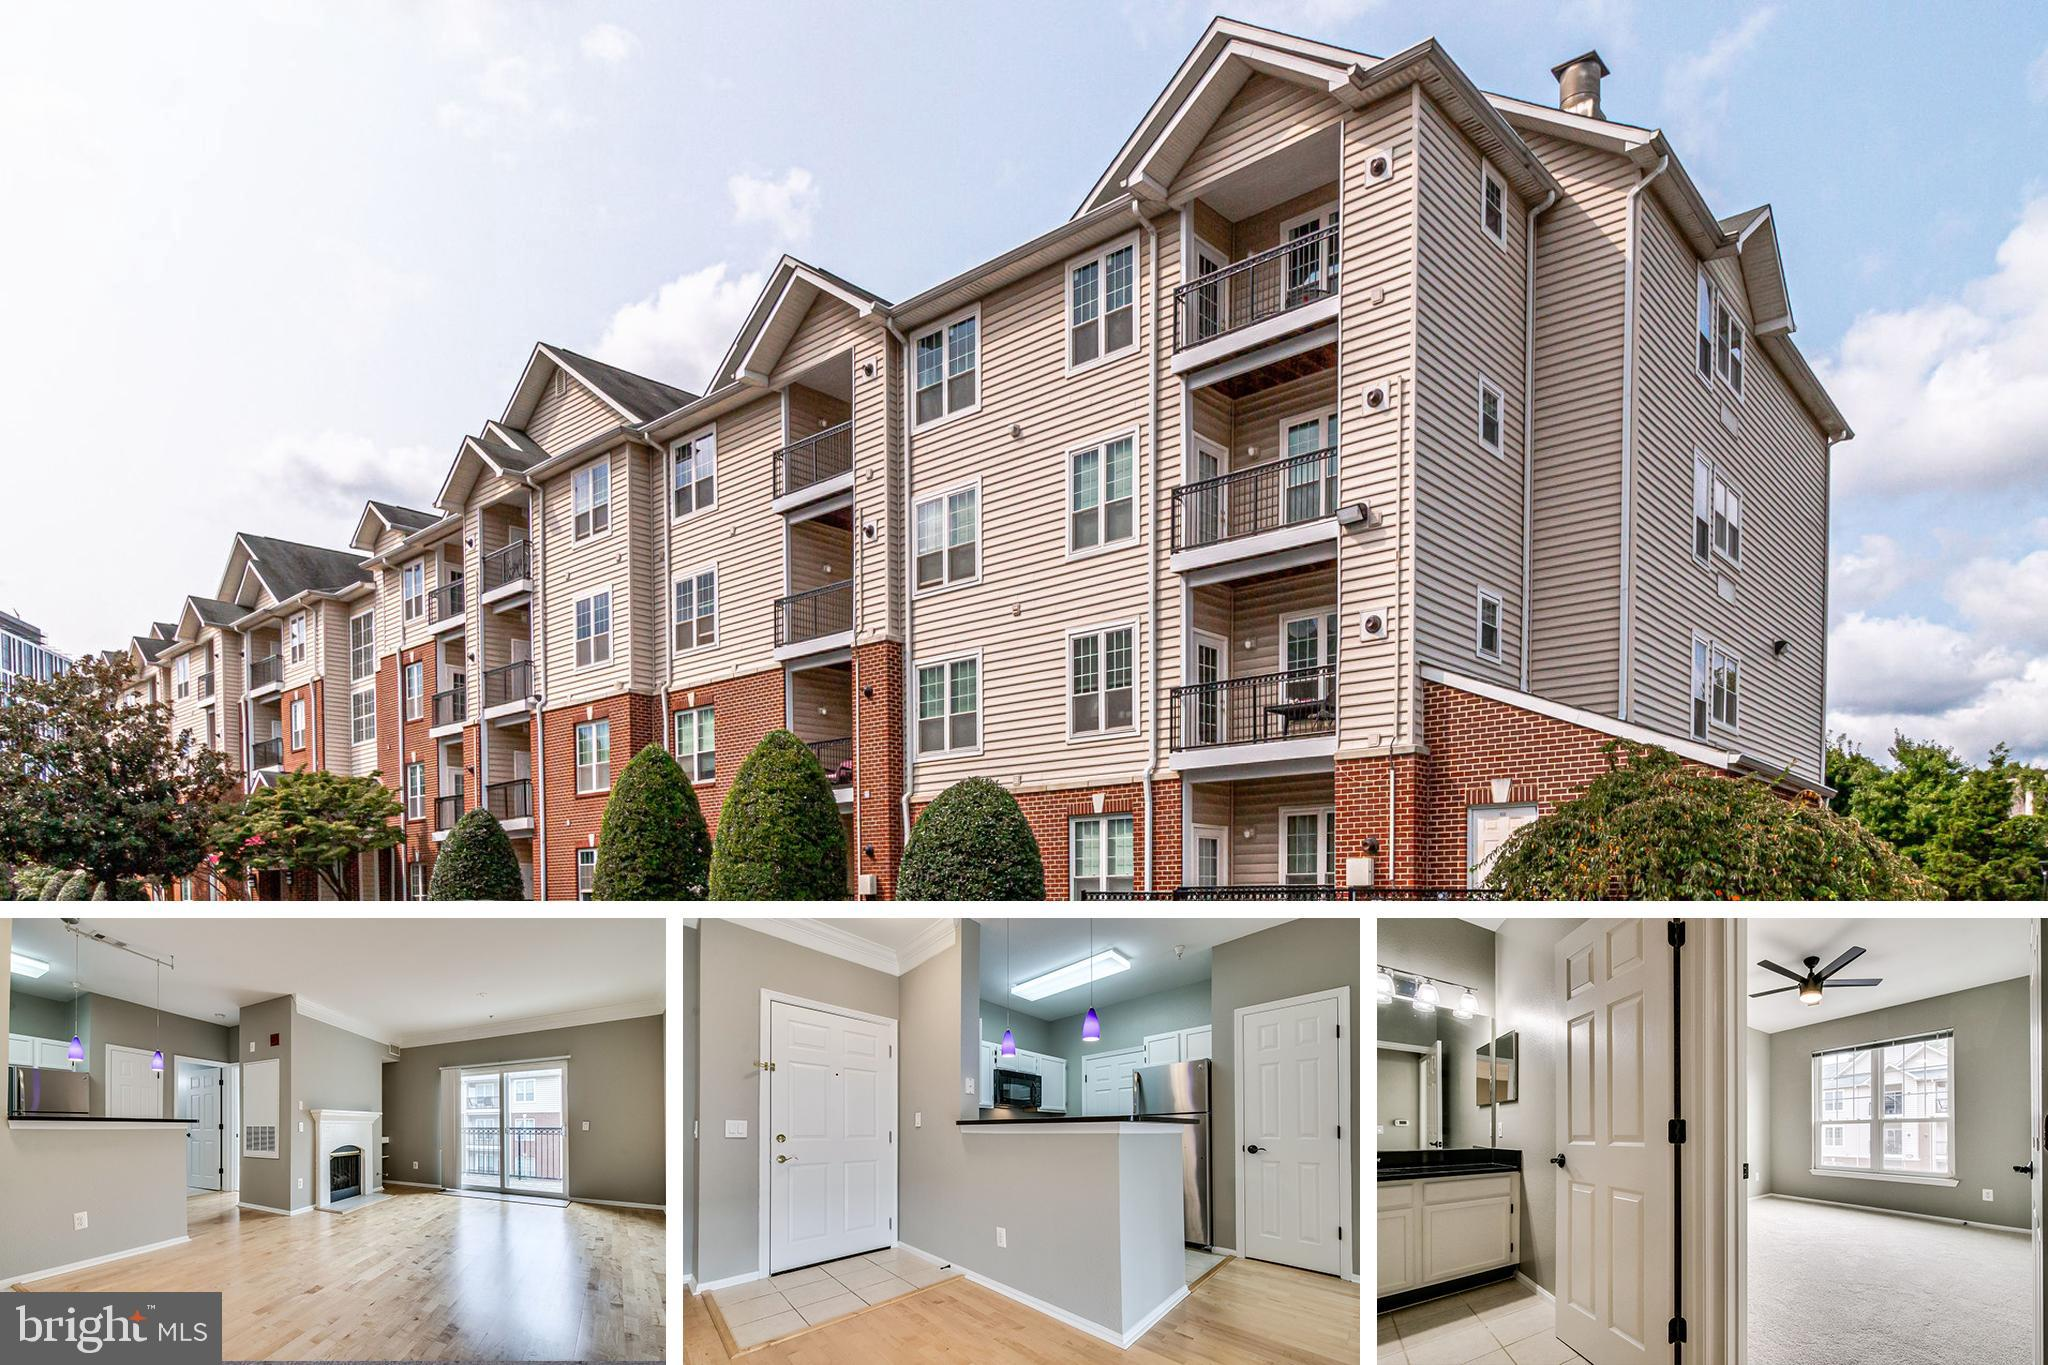 Great updated 3rd level condo in controlled access building.  Easy walk to McLean Silver Line metro and  Wegmans opening across the street soon. The unit has wood floors and carpet, granite counters, new paint, newer windows and more. Large 735 sqft Danielle model with 1 garage parking spot (#268) + 2 guest tags.  The Gates of McLean is a gated community with great amenities like an outdoor swimming pool, gym, clubhouse, sports court, grill area and walking paths. Minutes to everything in Tysons and minutes from toll road.